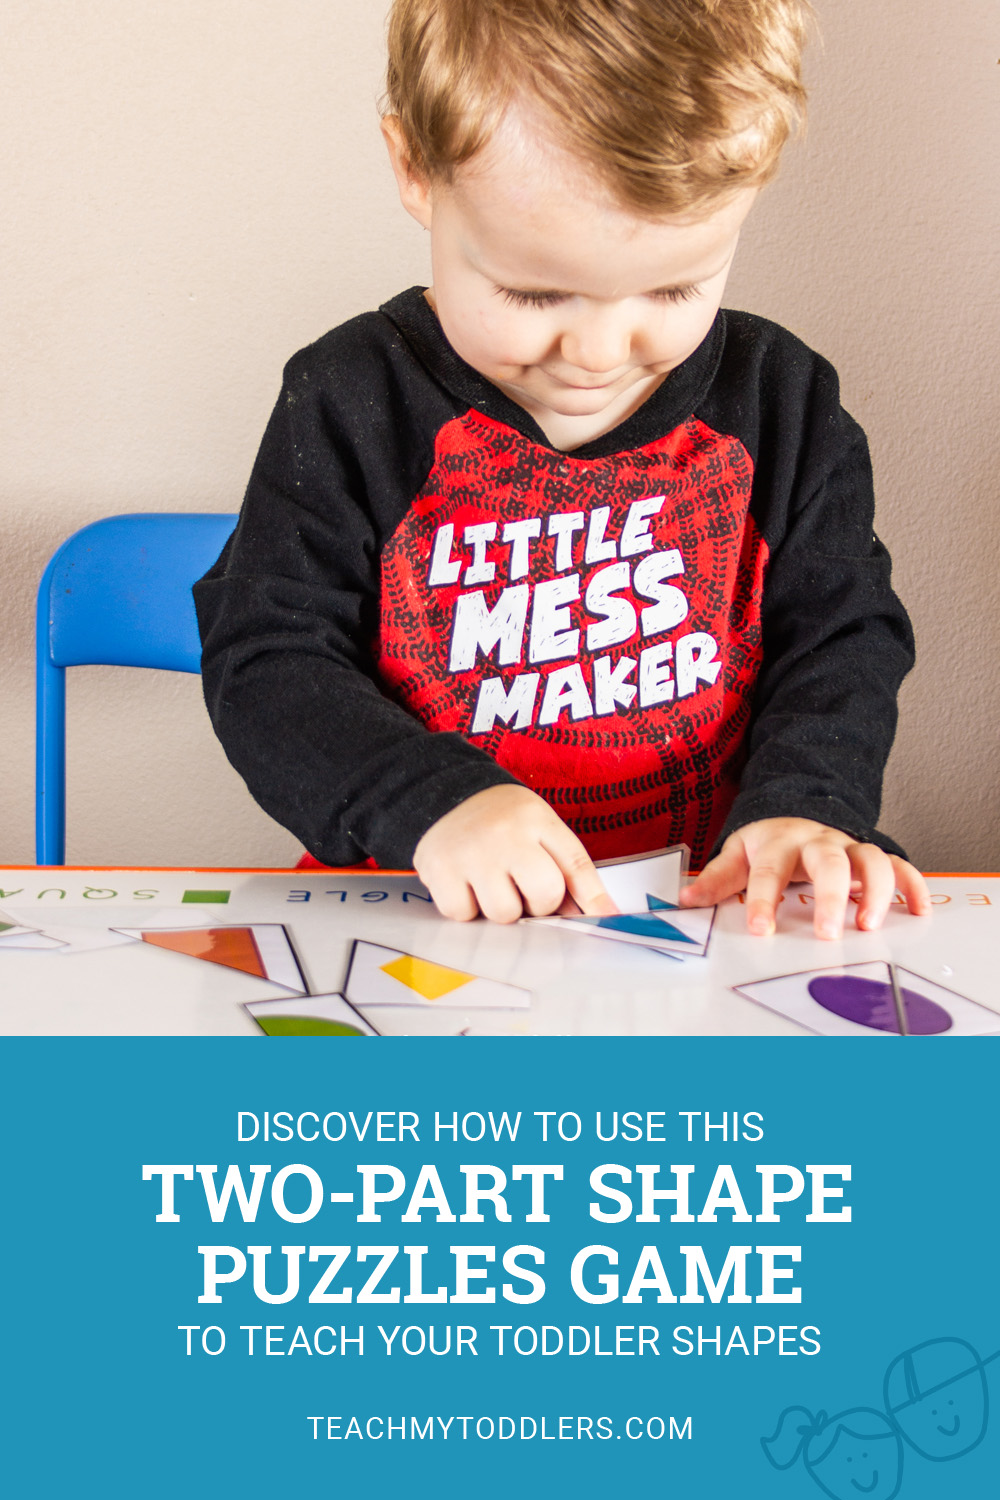 Discover how to use this two-part shape puzzles game to teach your toddler shapes